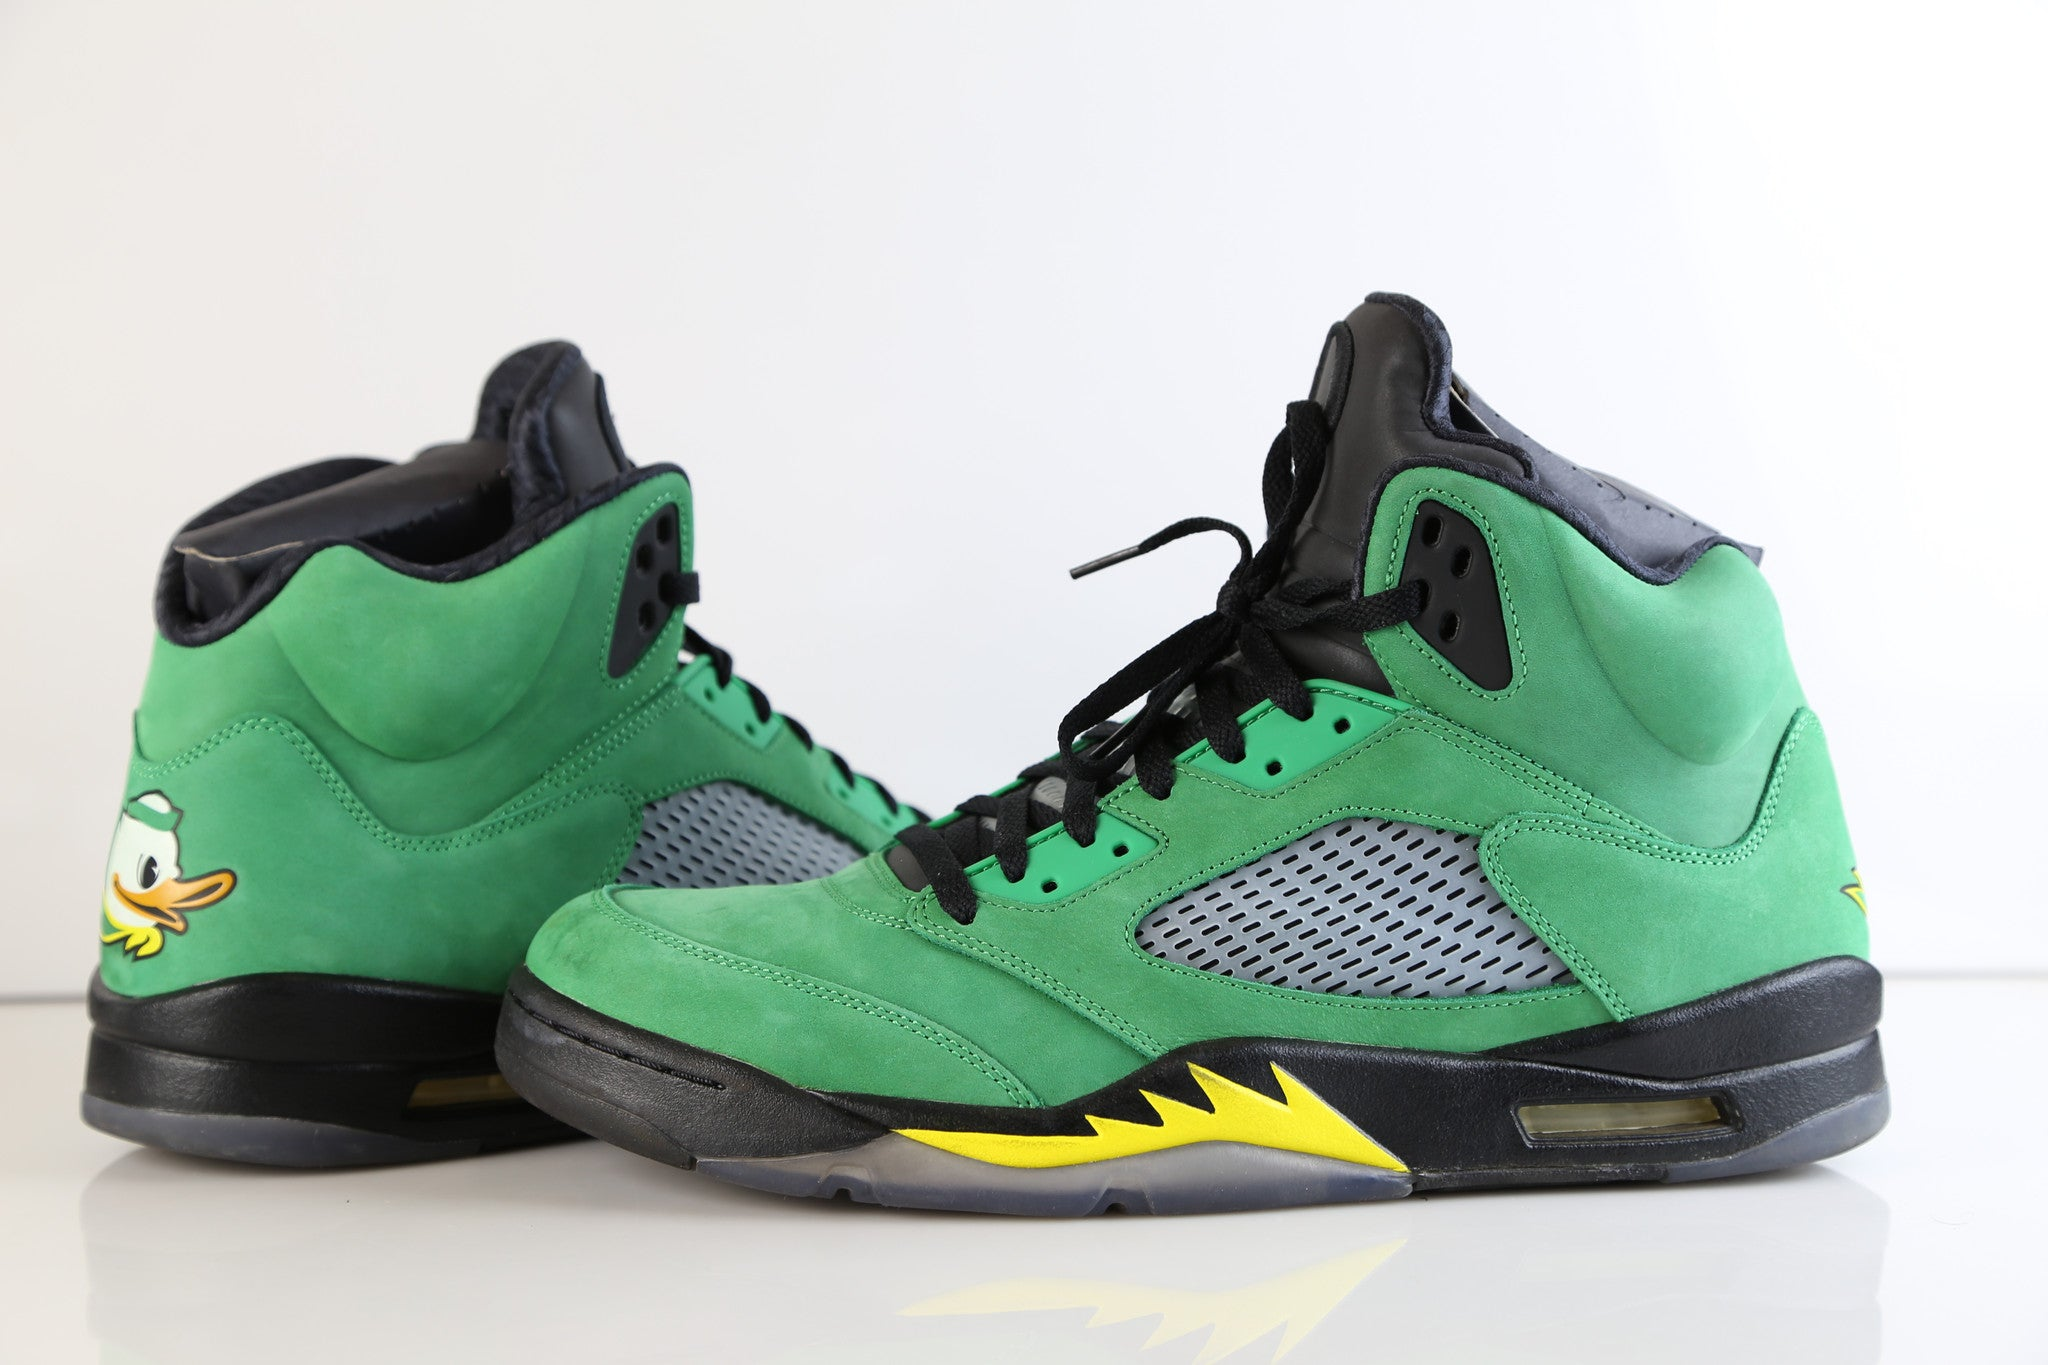 5c2212285aaa Nike Air Jordan Retro 5 Oregon Ducks Apple Green PE Sample size 14 (NO